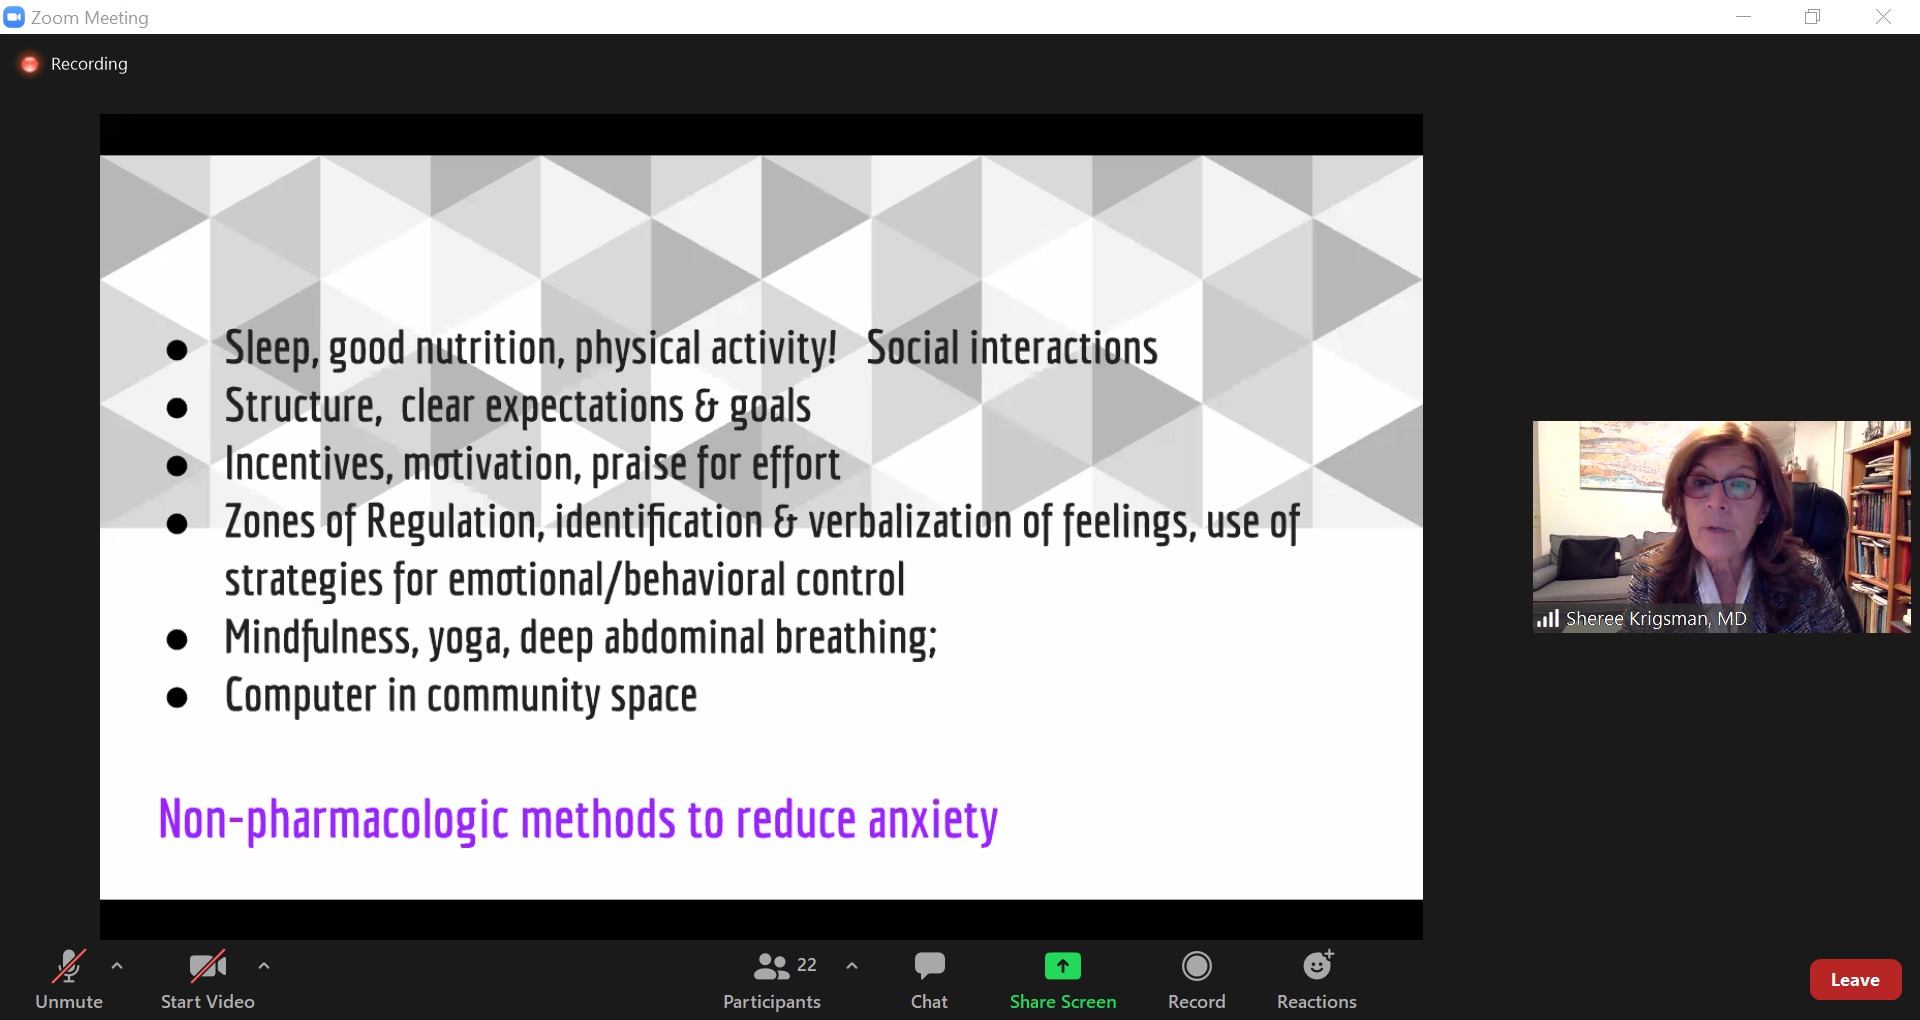 Dr. Sheree Krigsman discusses ways to reduce stress and anxiety without medication.